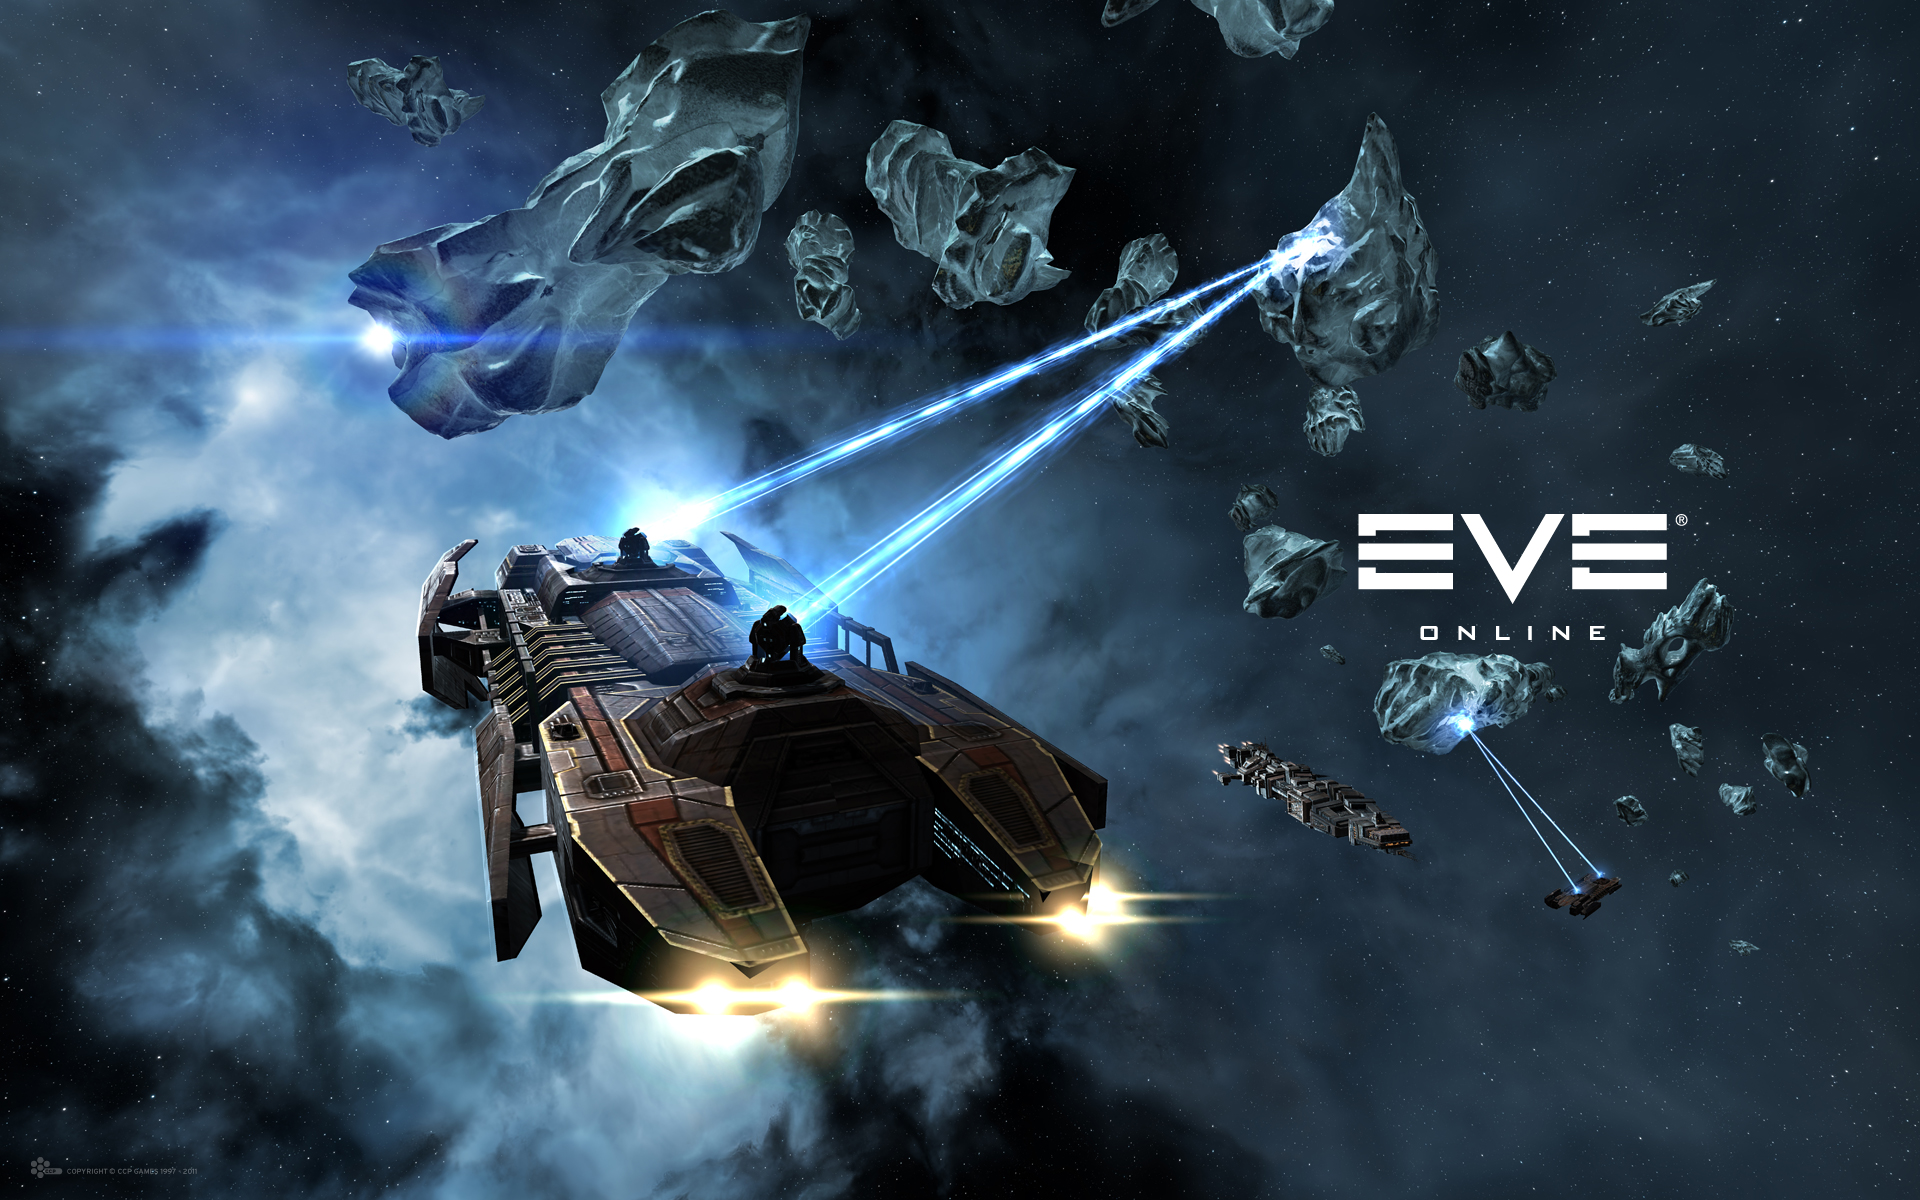 eve online gameplay 2017 - photo #31